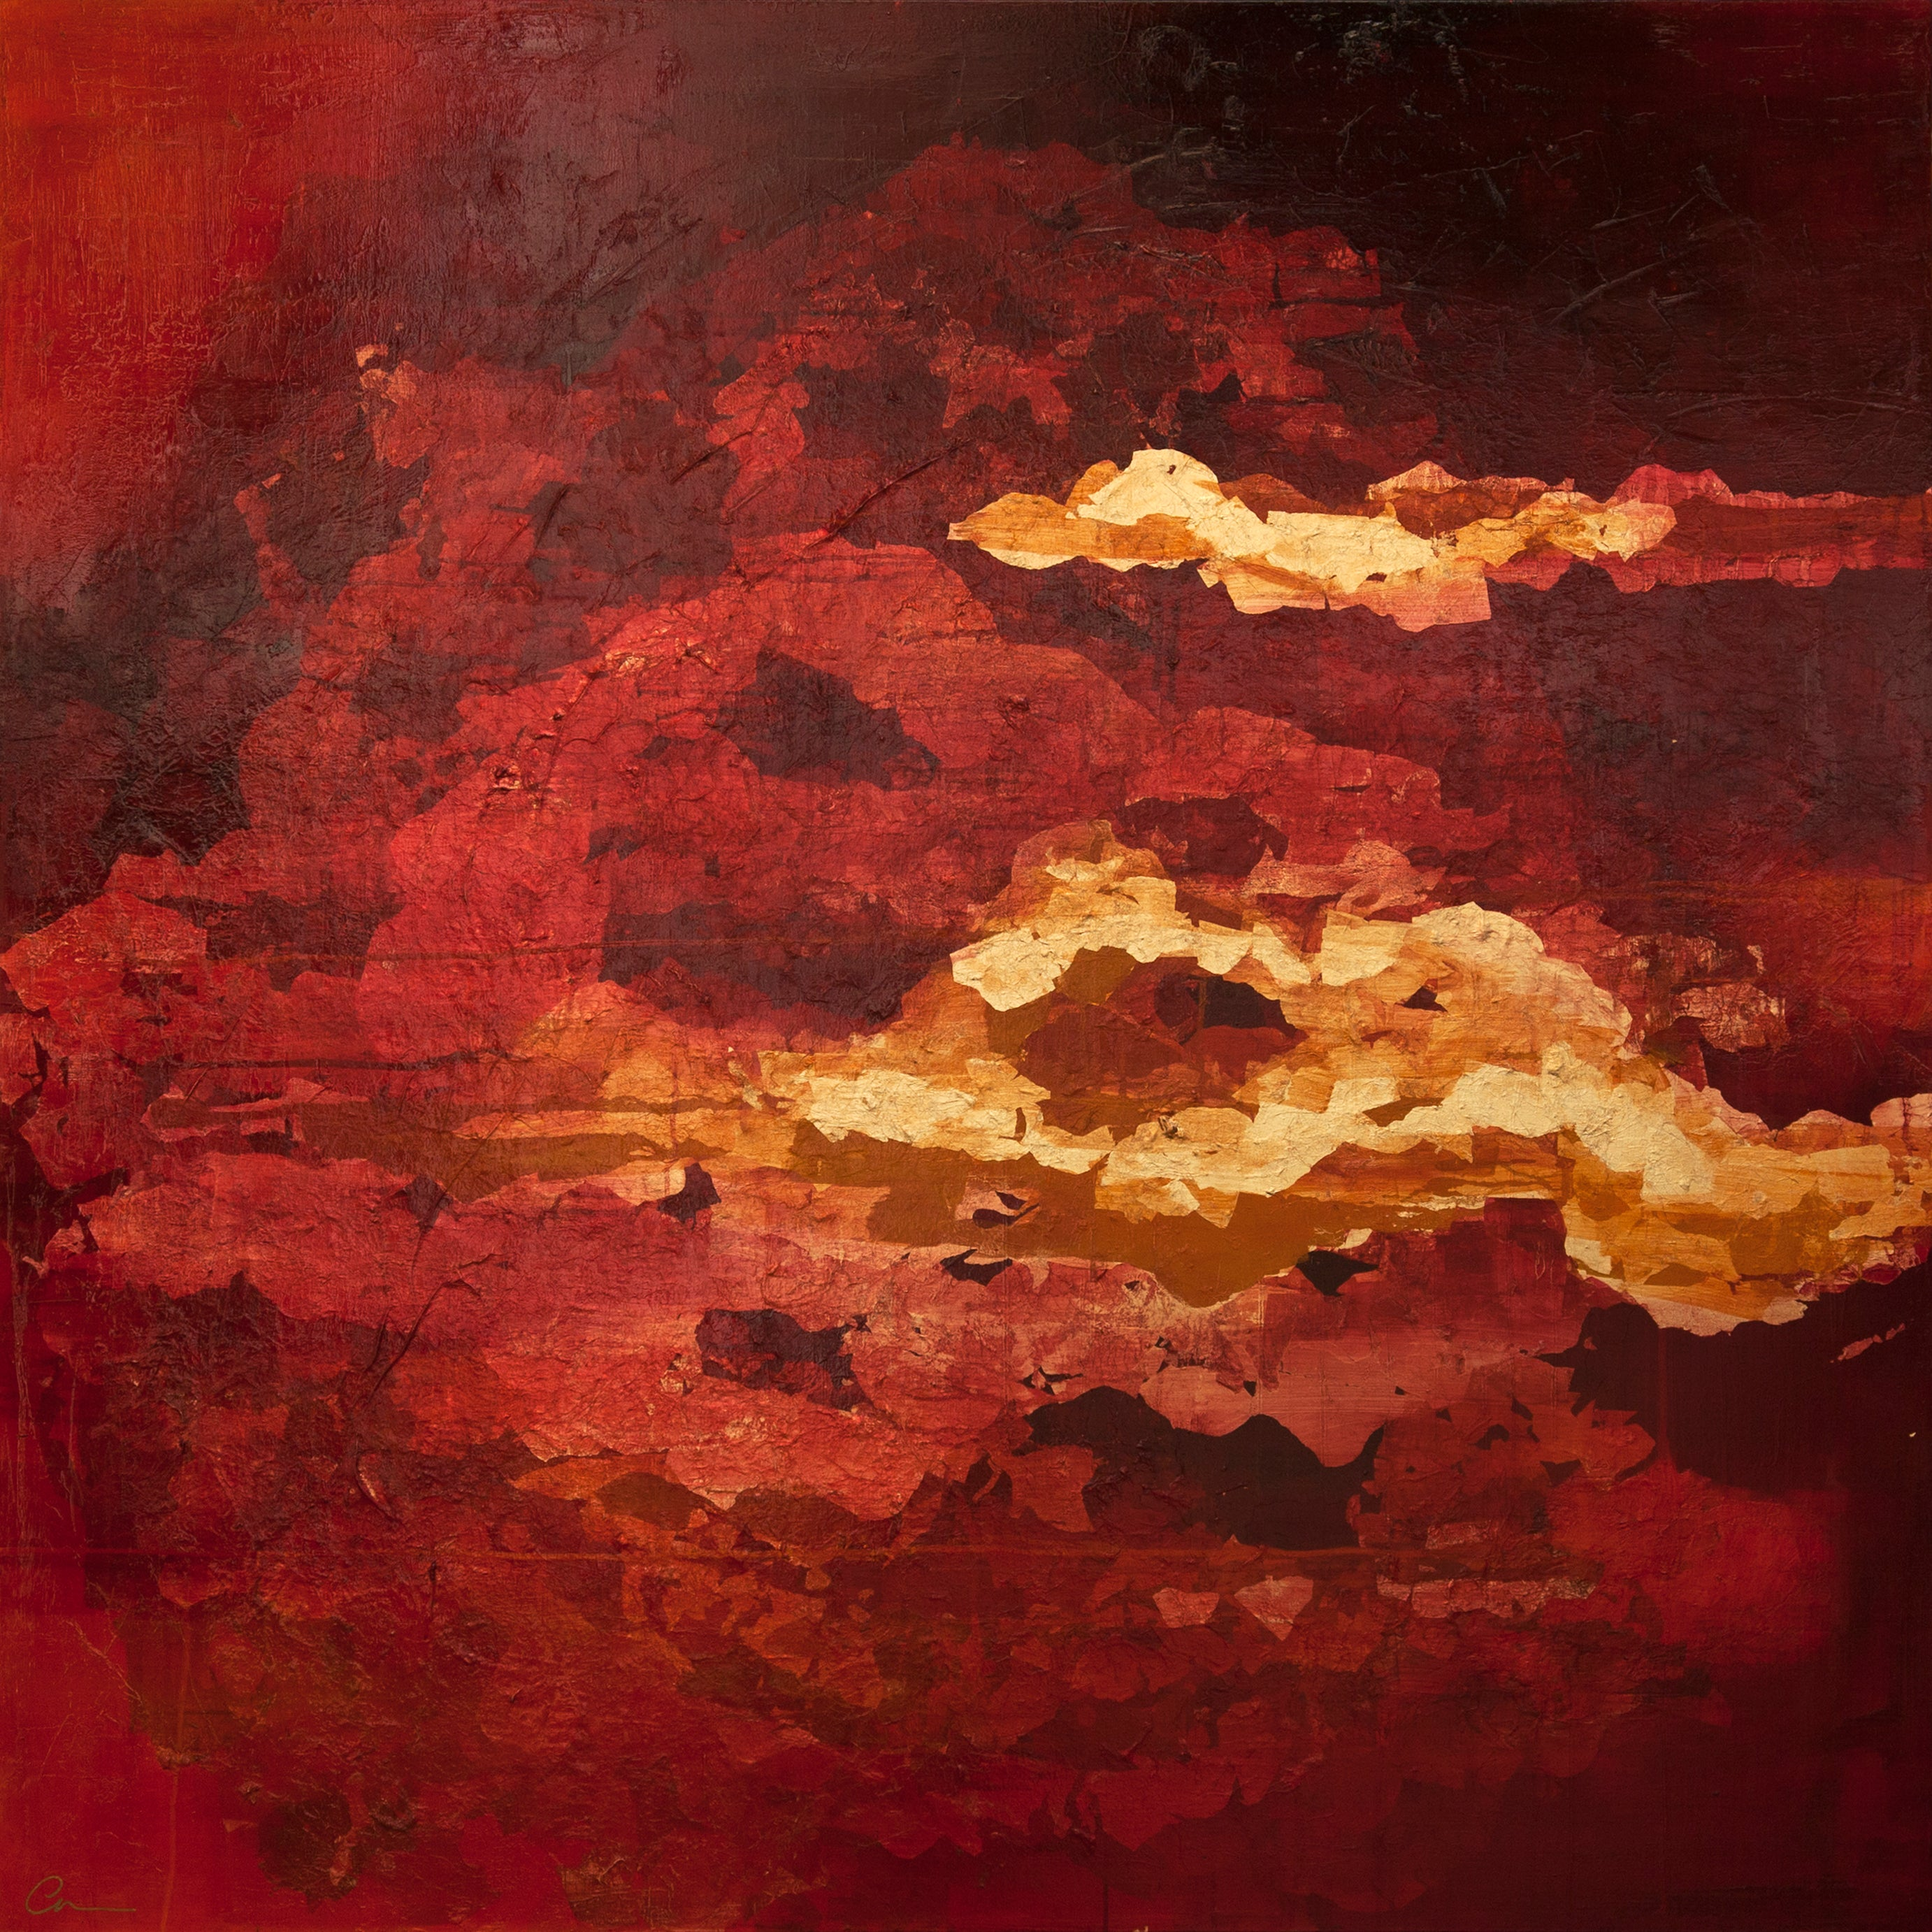 Into the Heart with Gold - 21st Century, Contemporary, Oil Painting, Gold Leaf